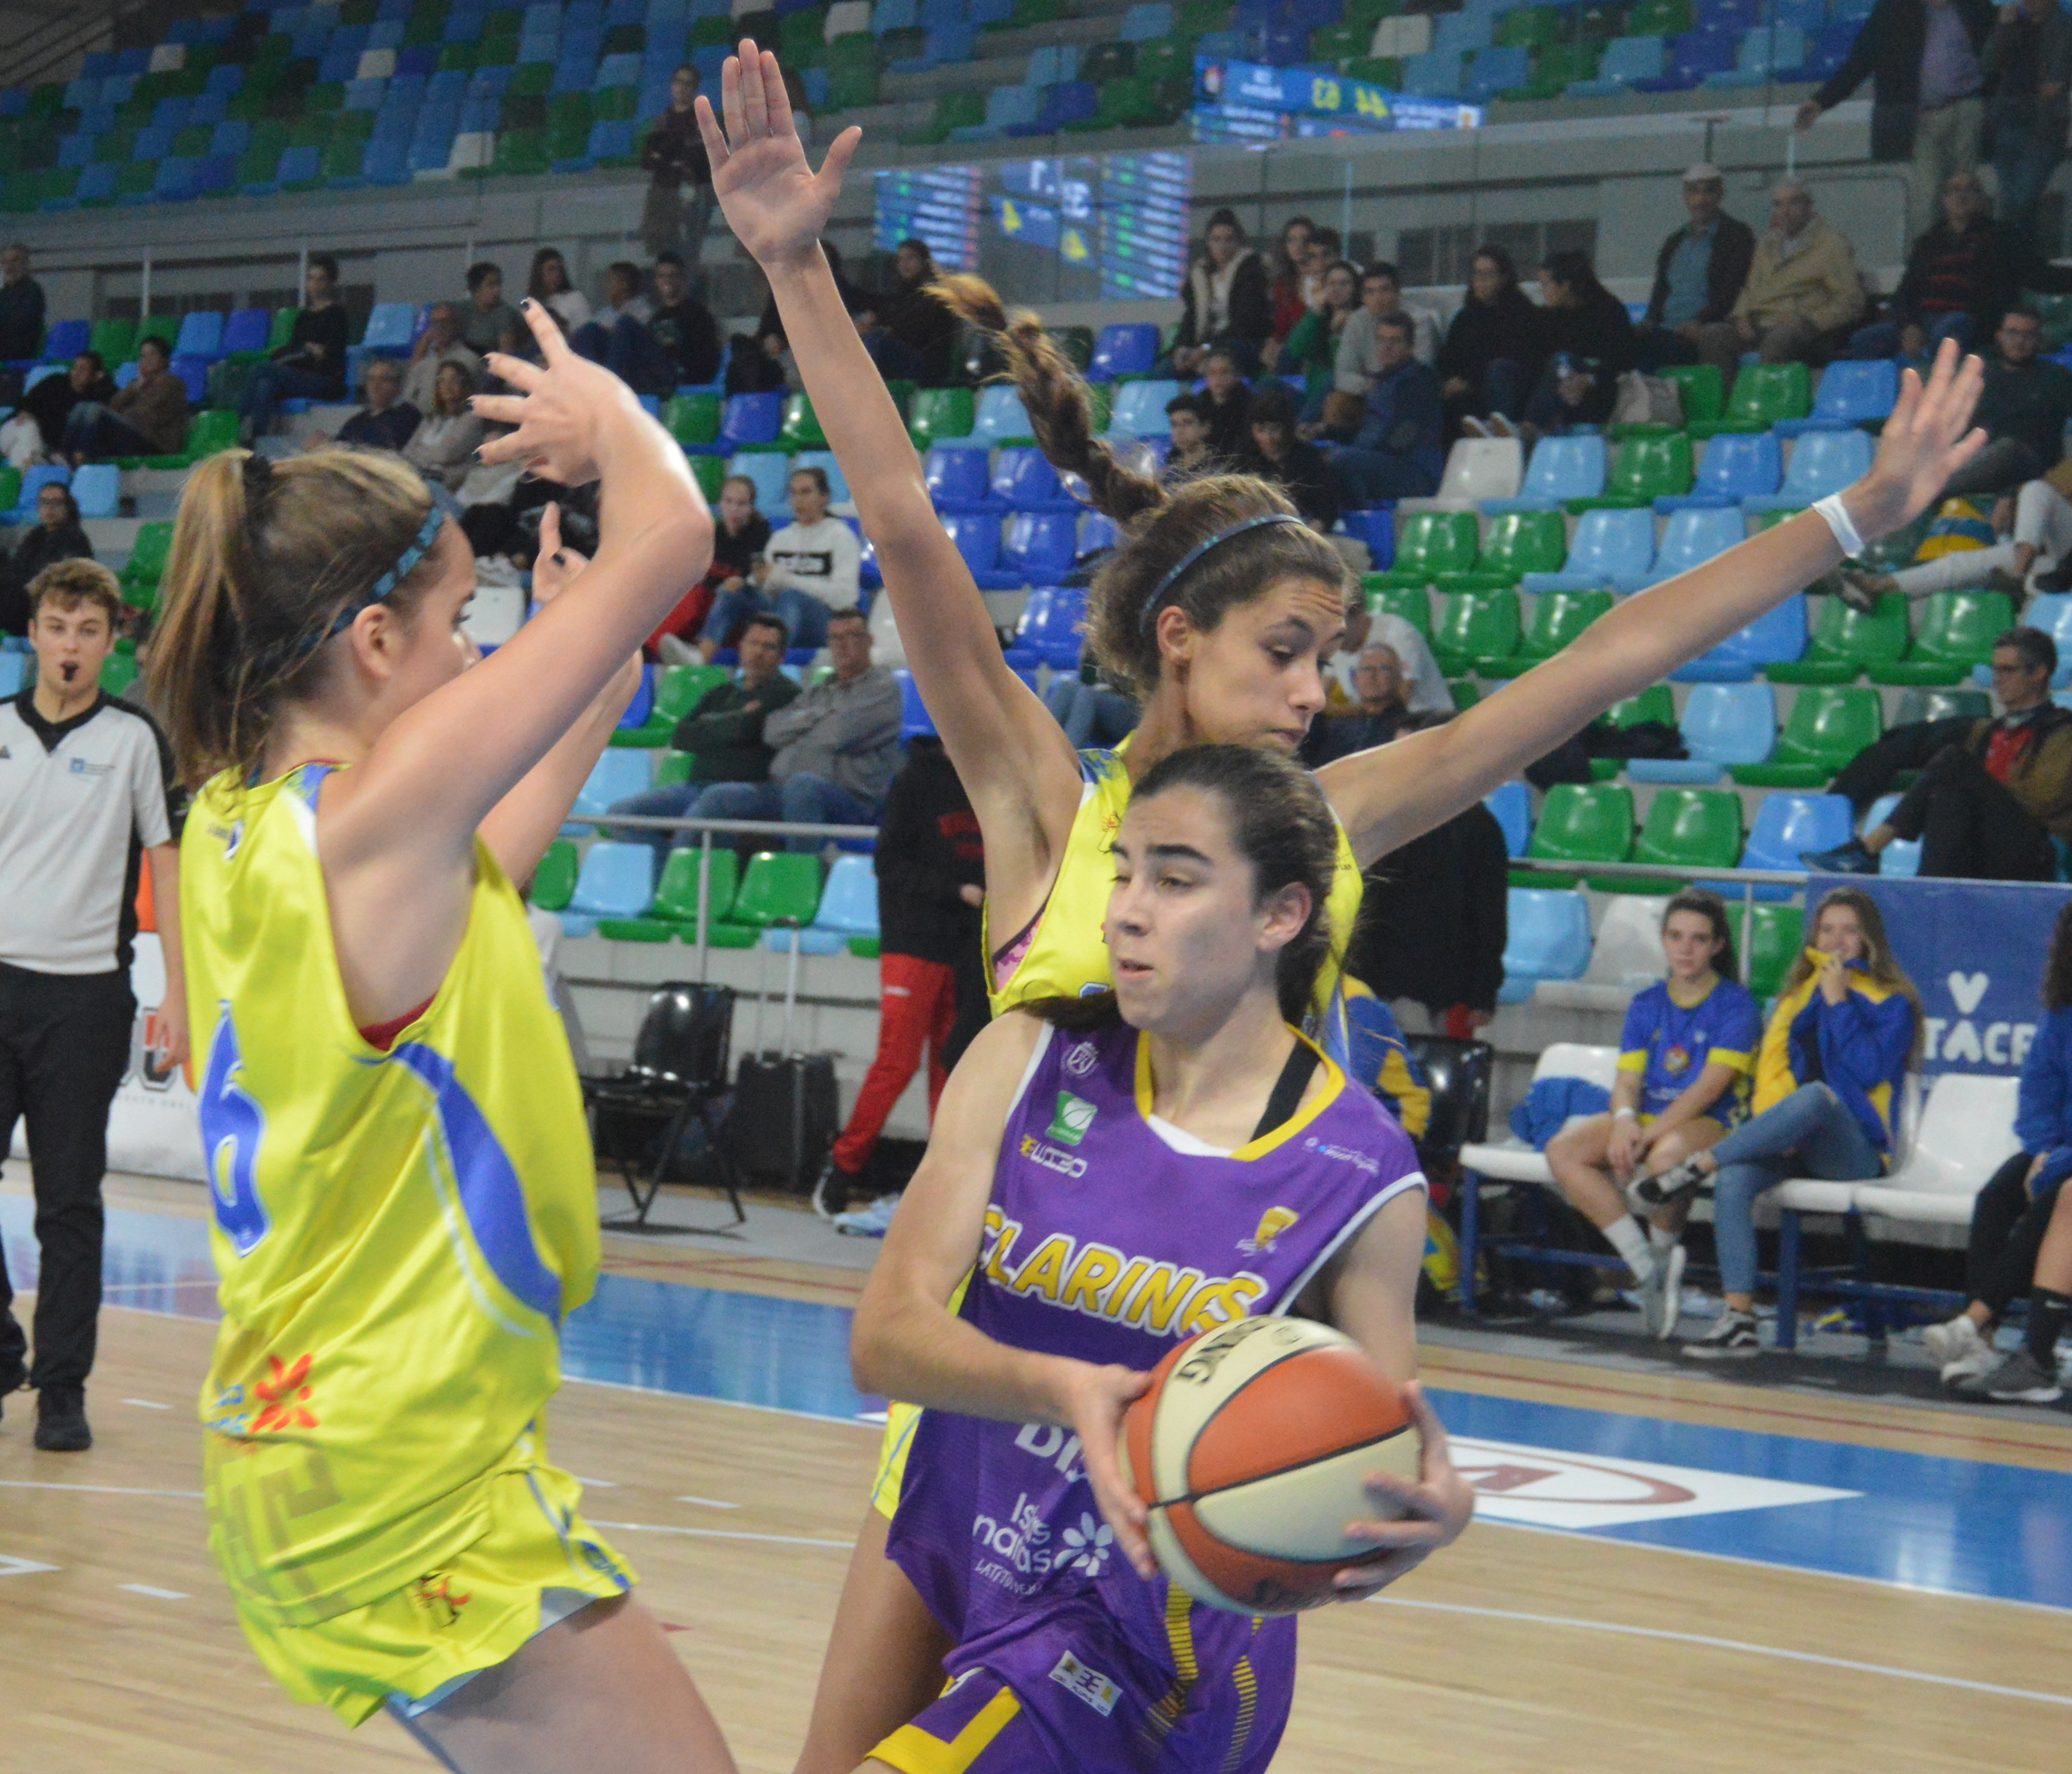 SPAR Gran Canaria – Adareva Tenerife, final femenina del 'XXIII Fred Olsen Express International Basketball Tournament'